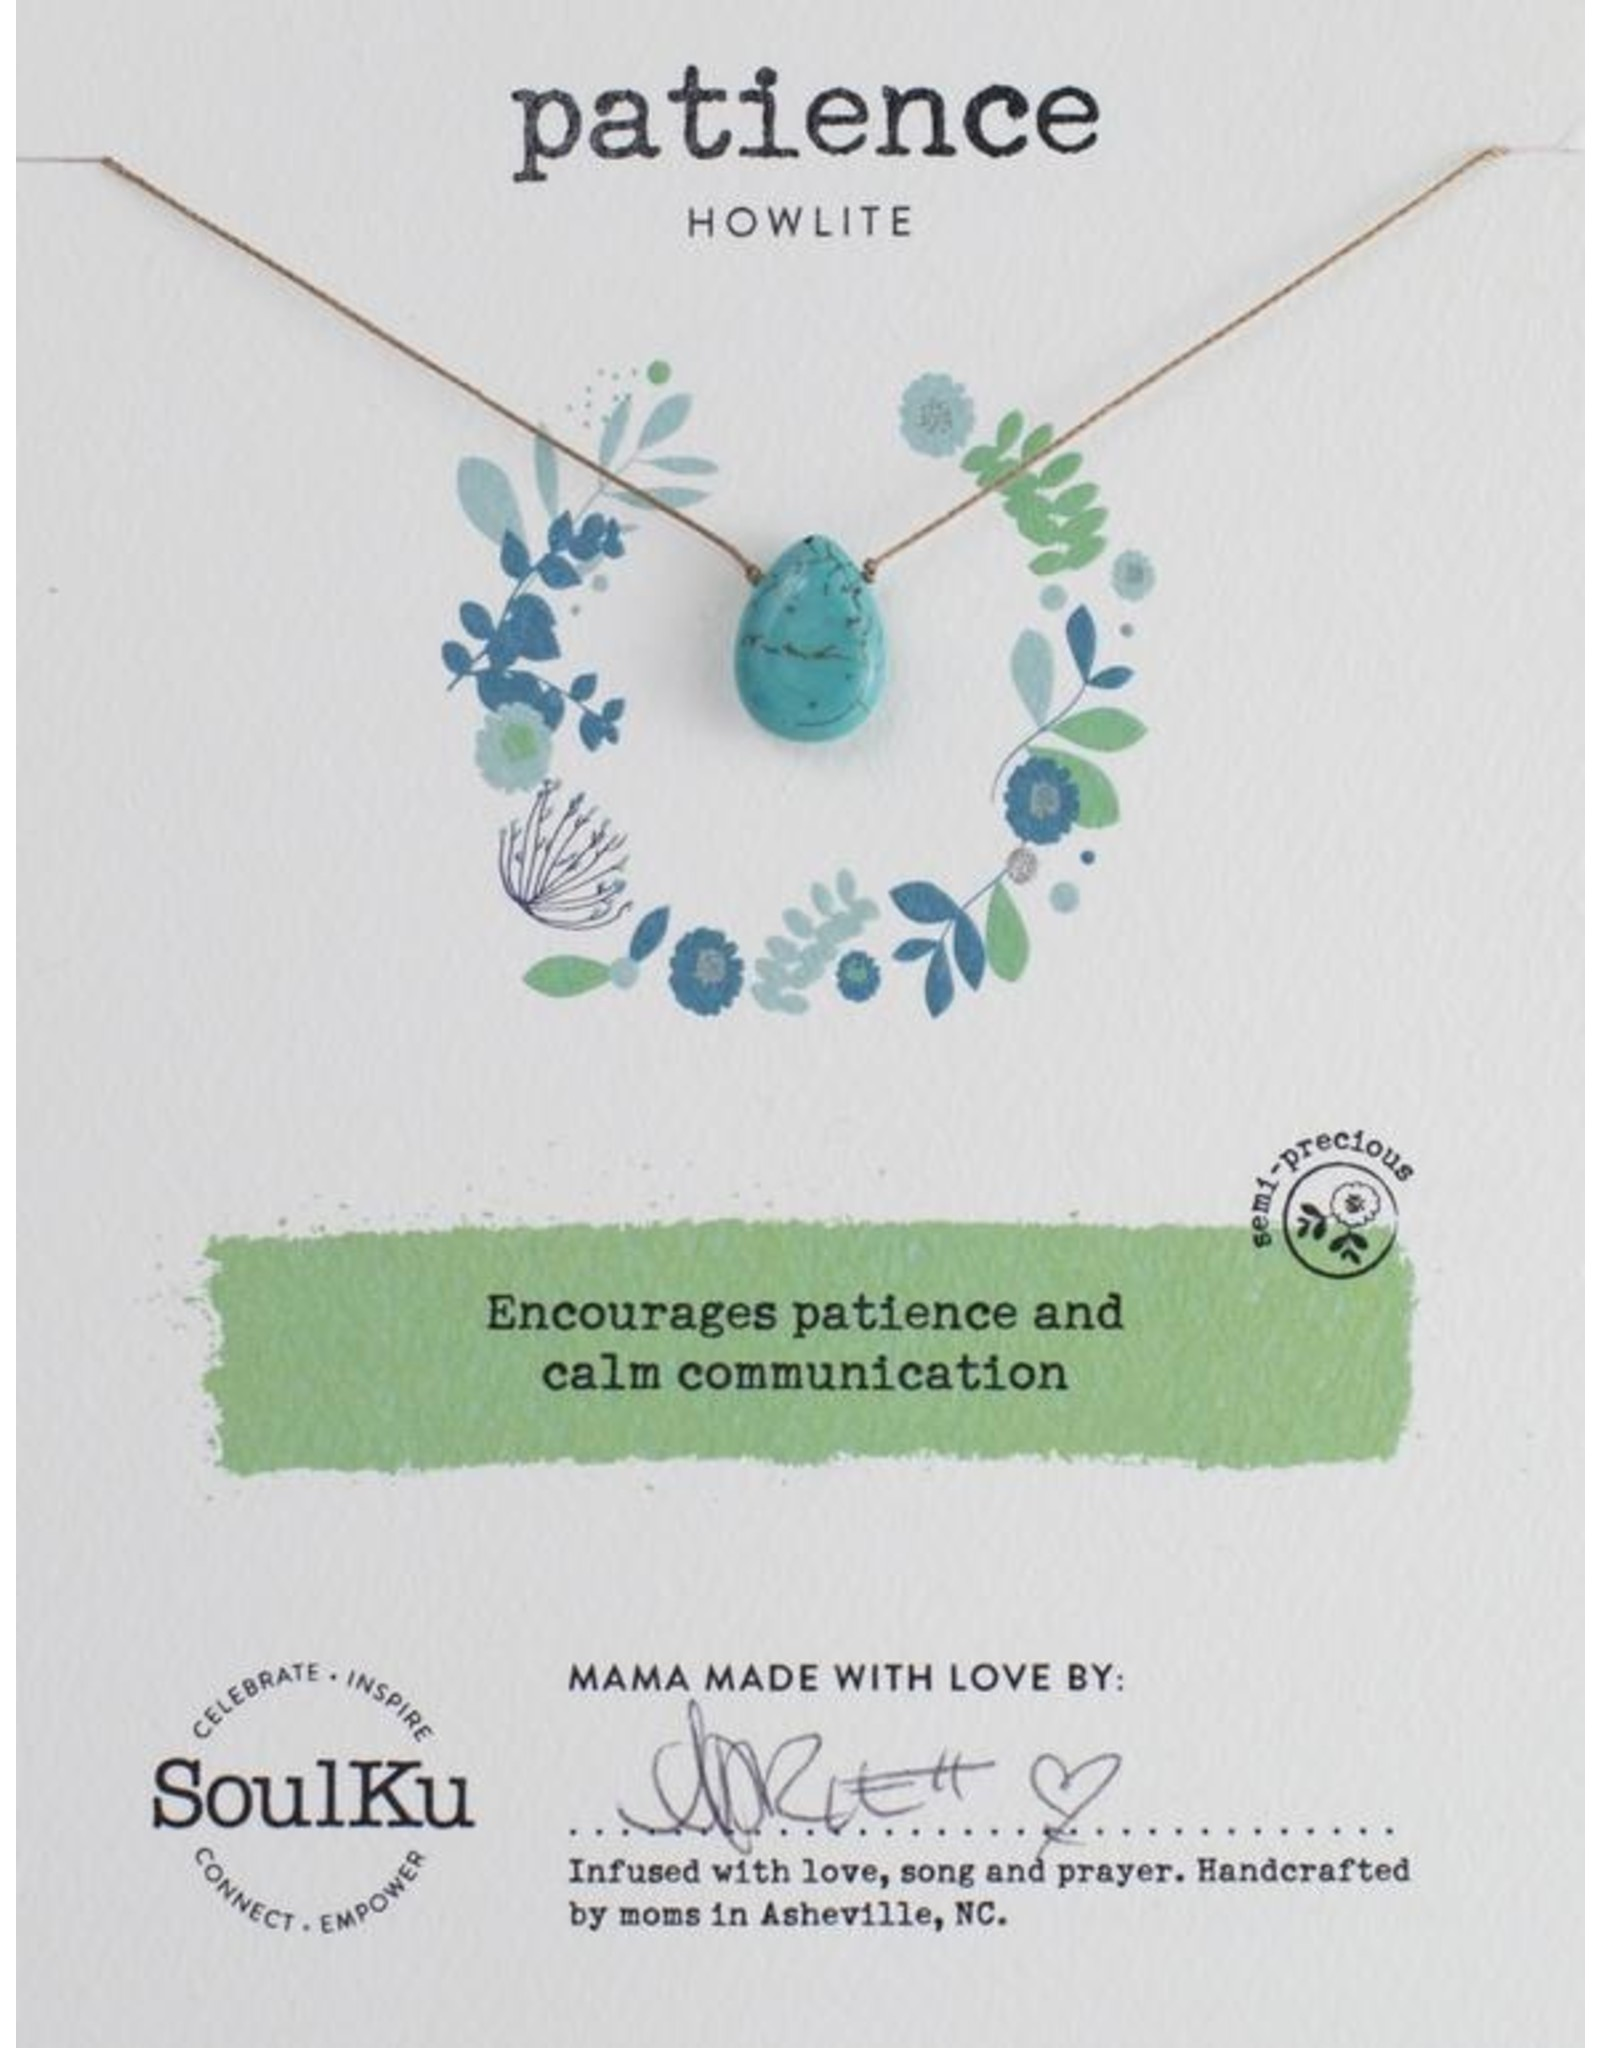 Blue Howlite Necklace for Patience - SoulKu